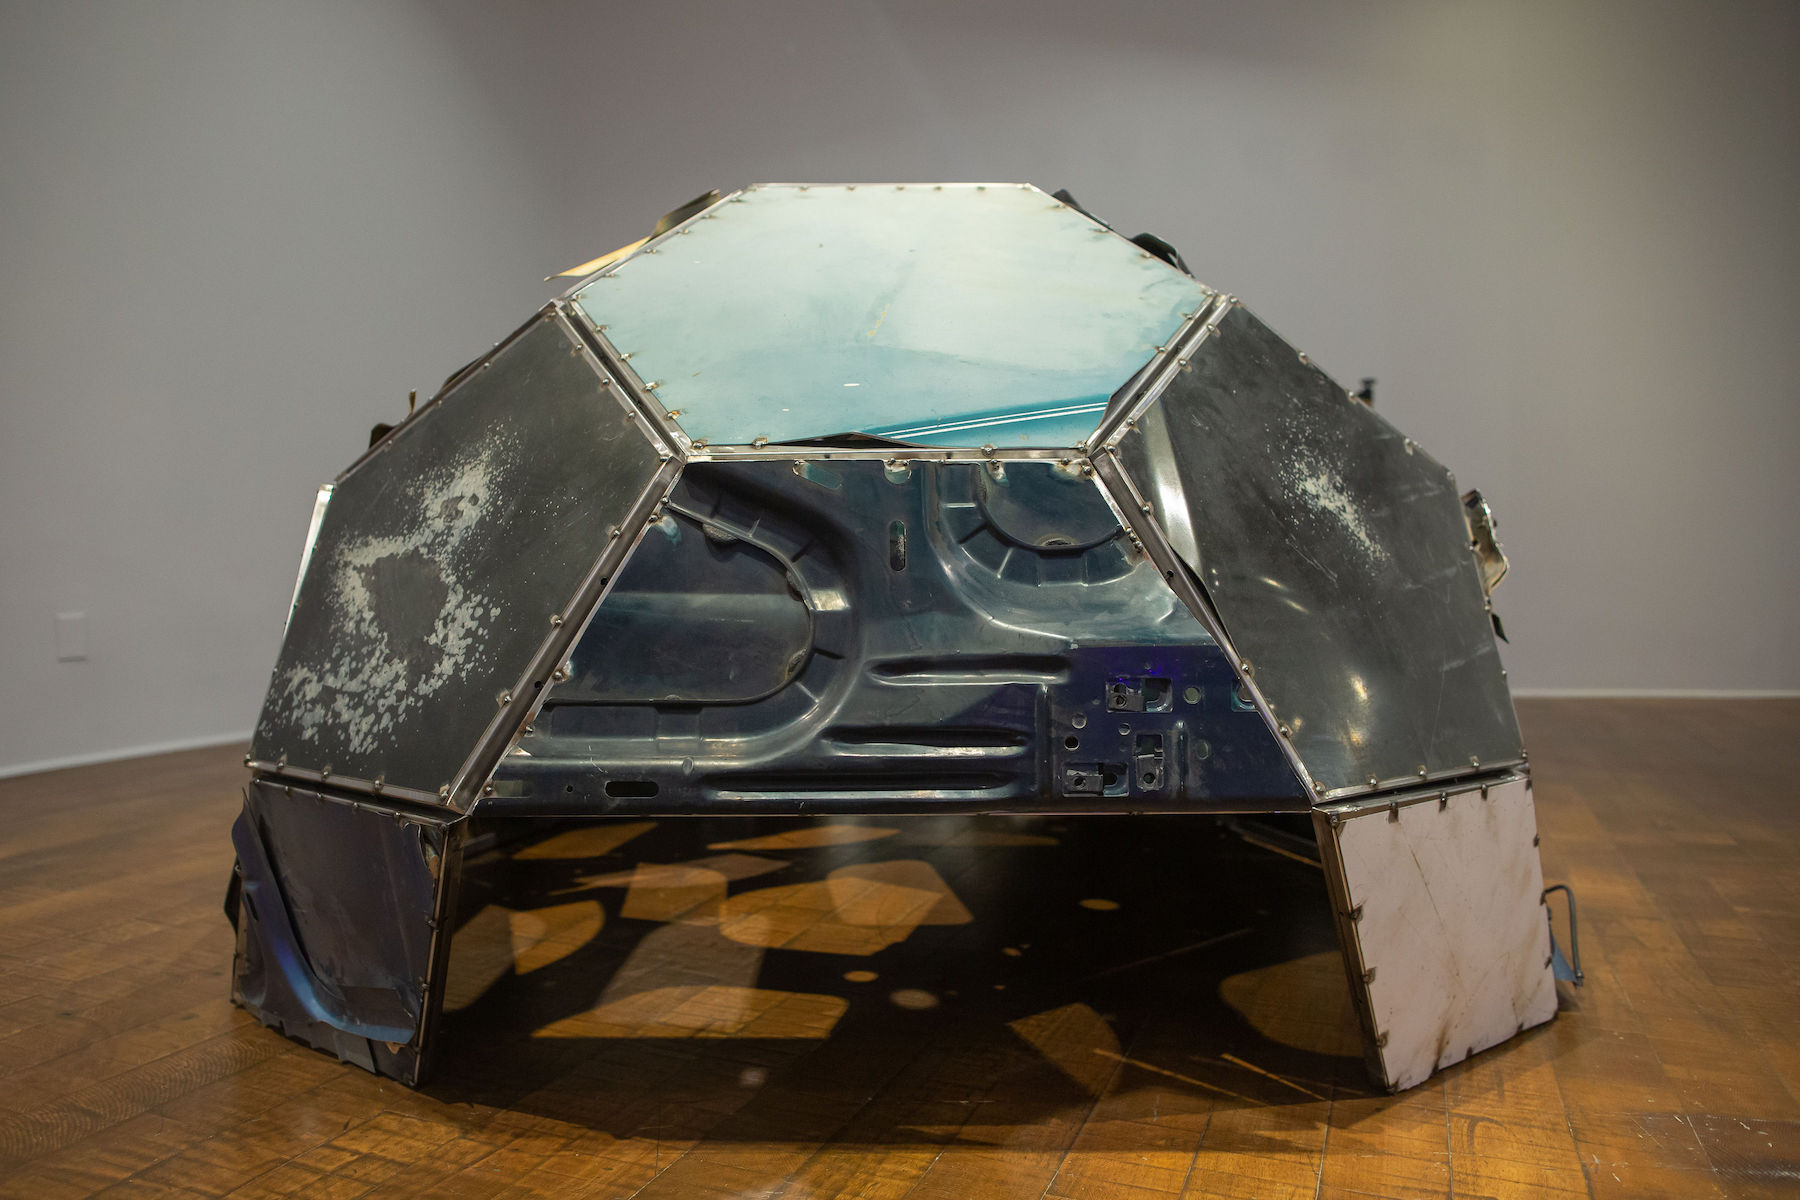 Photo of artwork by Beatriz Cortez with glass and metal in a dome shape.